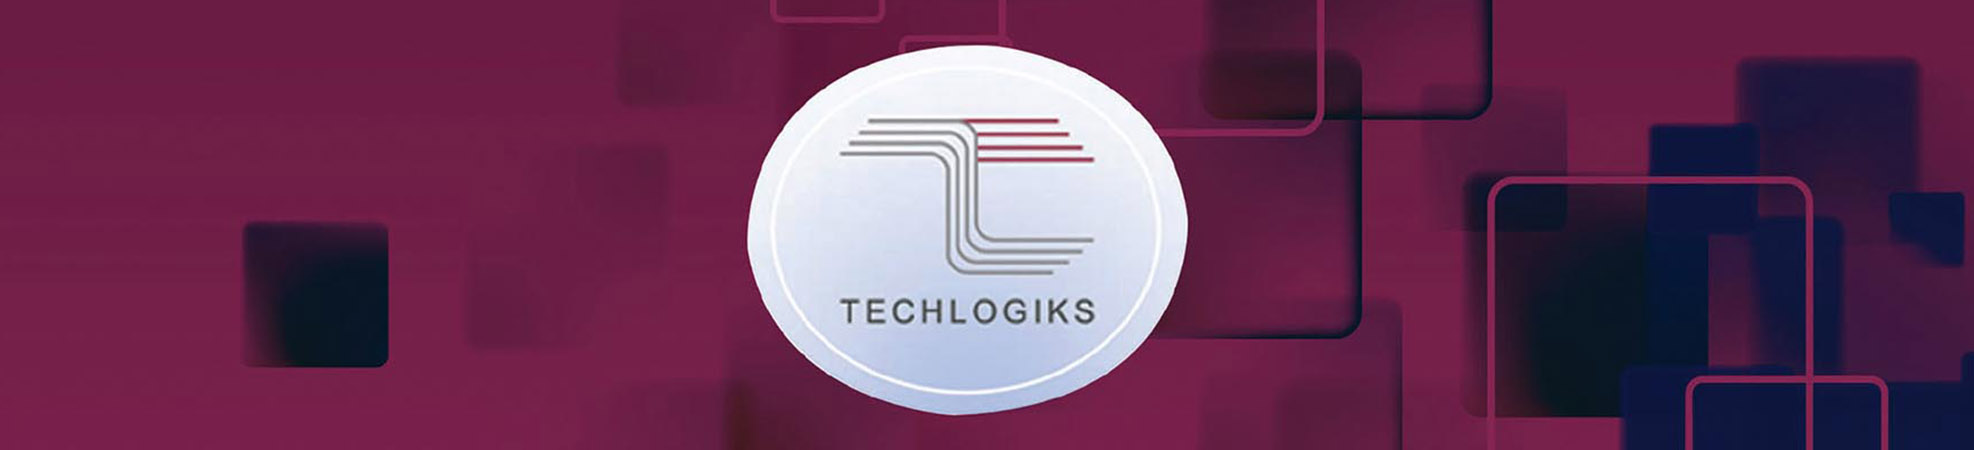 Techlogiks-link-top-banner